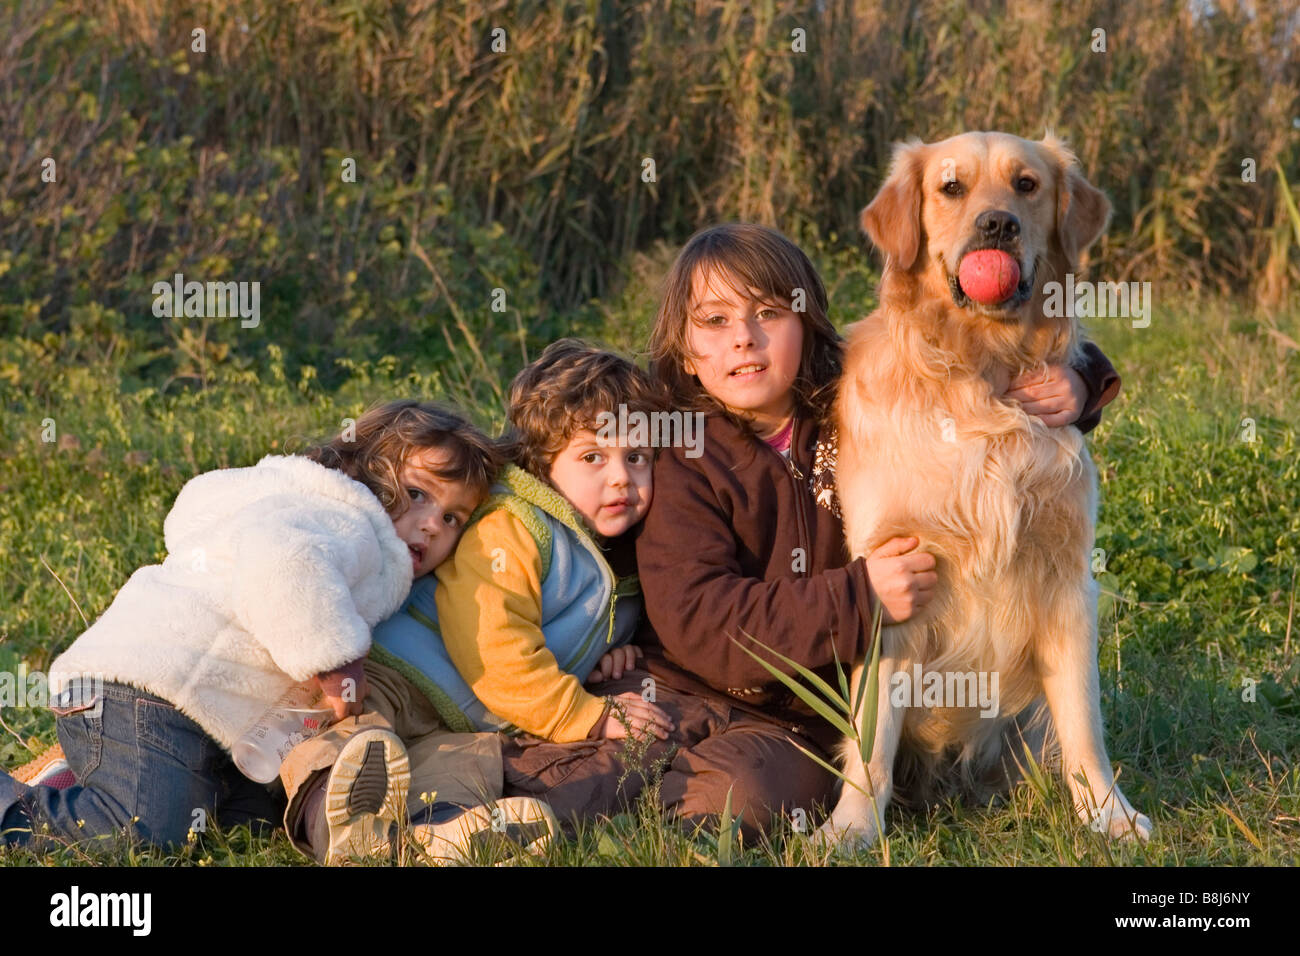 children playing with a dog Stock Photo